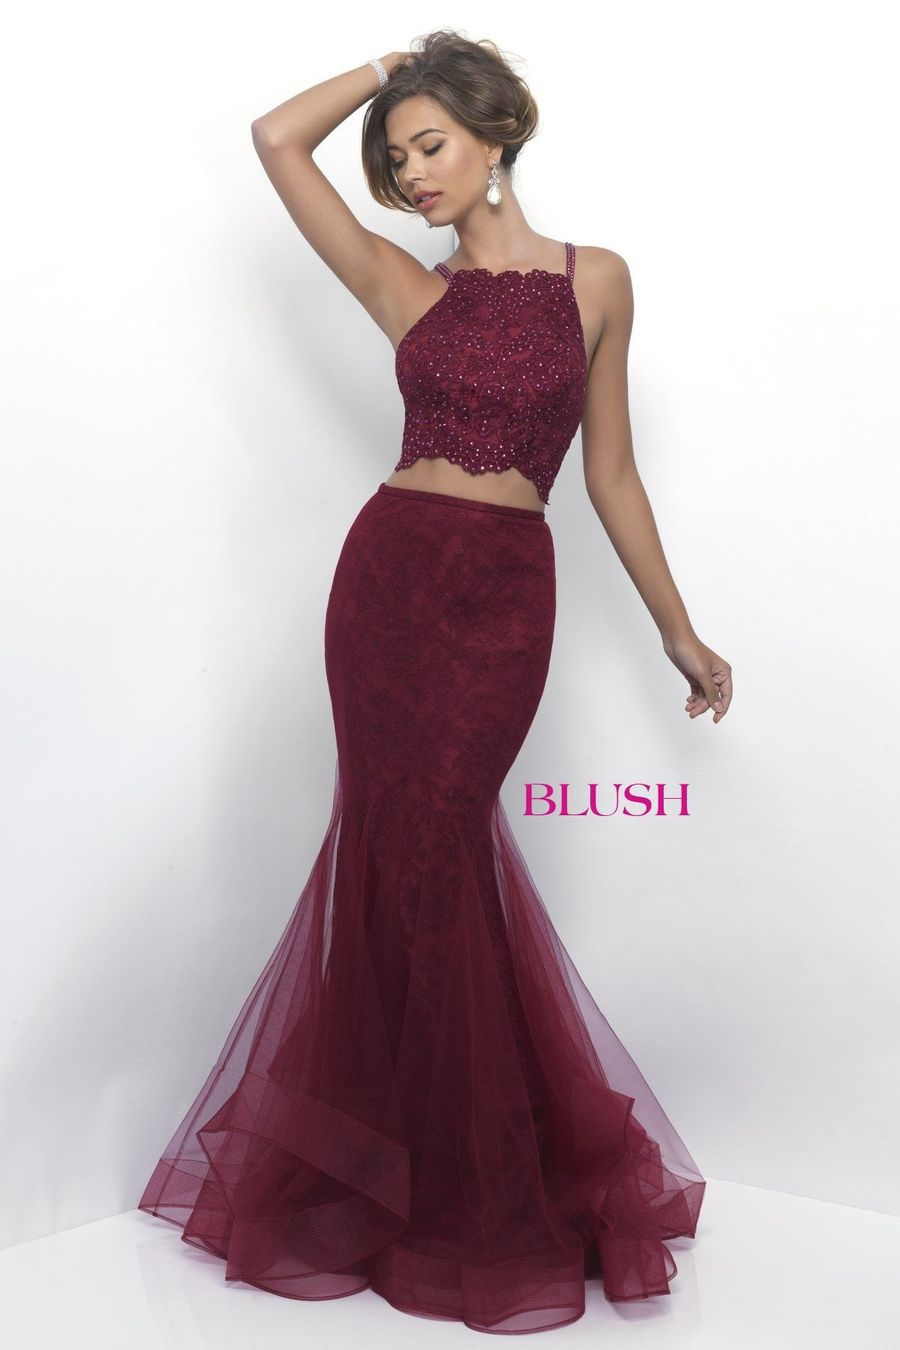 Style 11224 Blush Prom  Red Size 2 Tall Height Tulle Sequin Mermaid Dress on Queenly